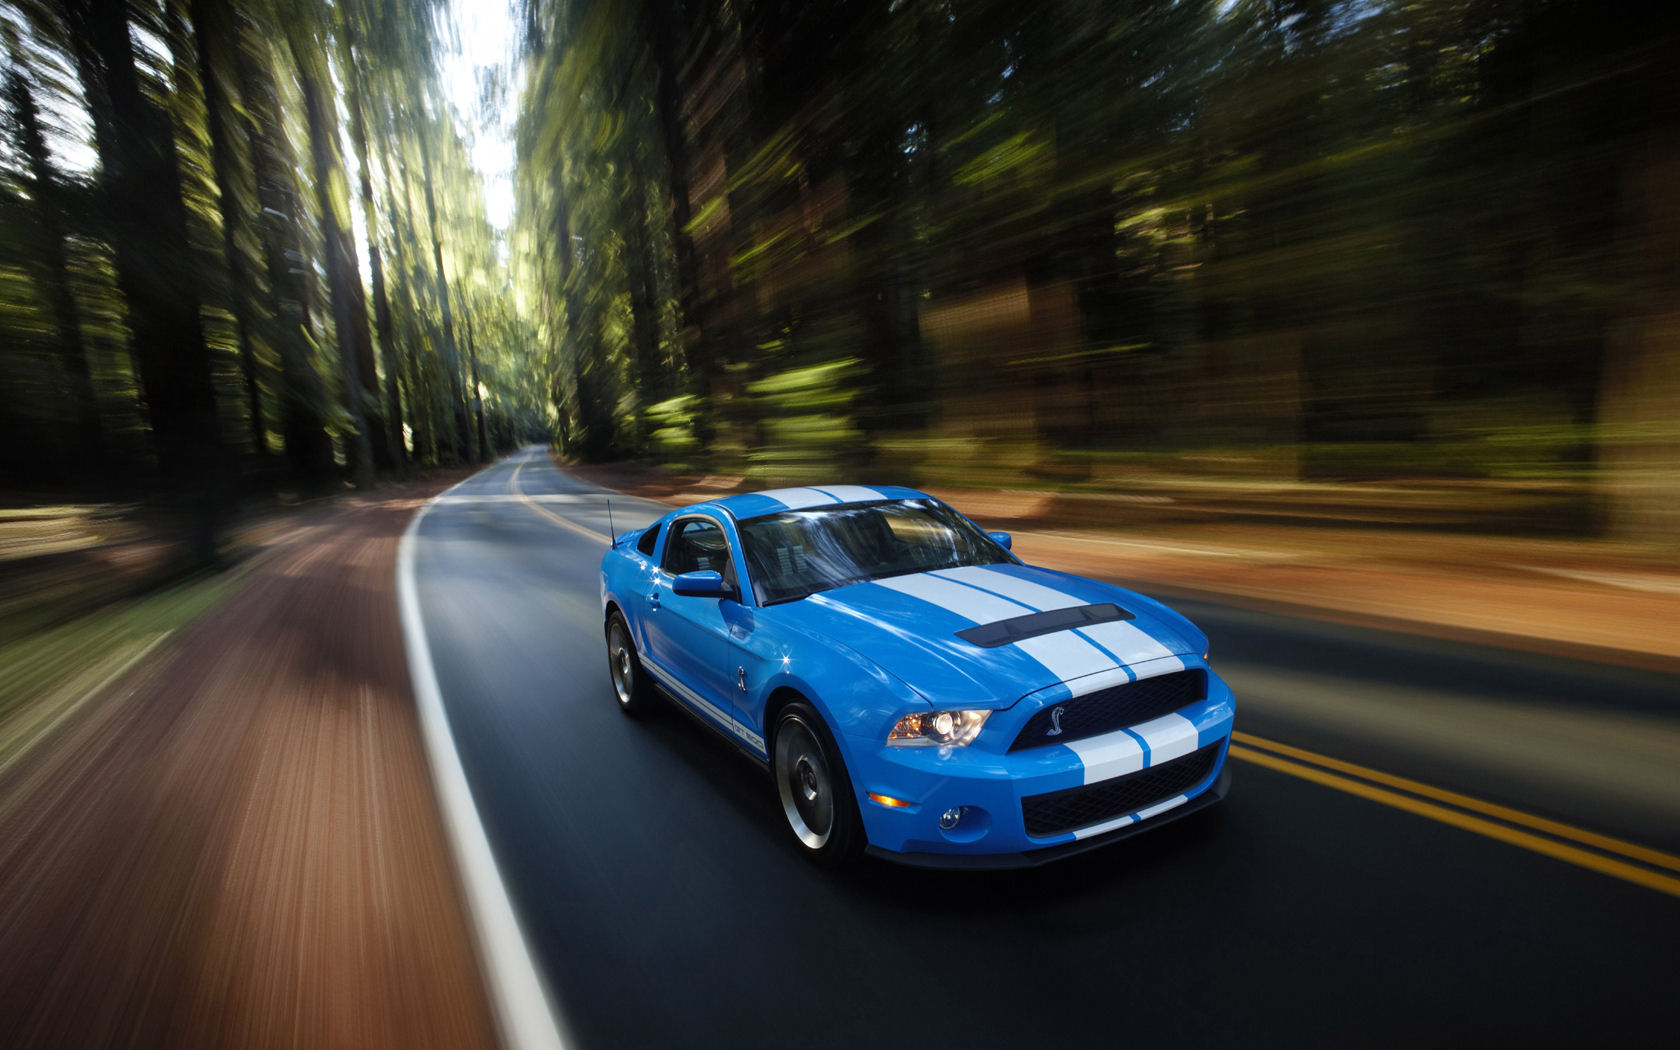 Ford Mustang Ford Mustang Desktop Wallpapers Widescreen Wallpaper 1680x1050